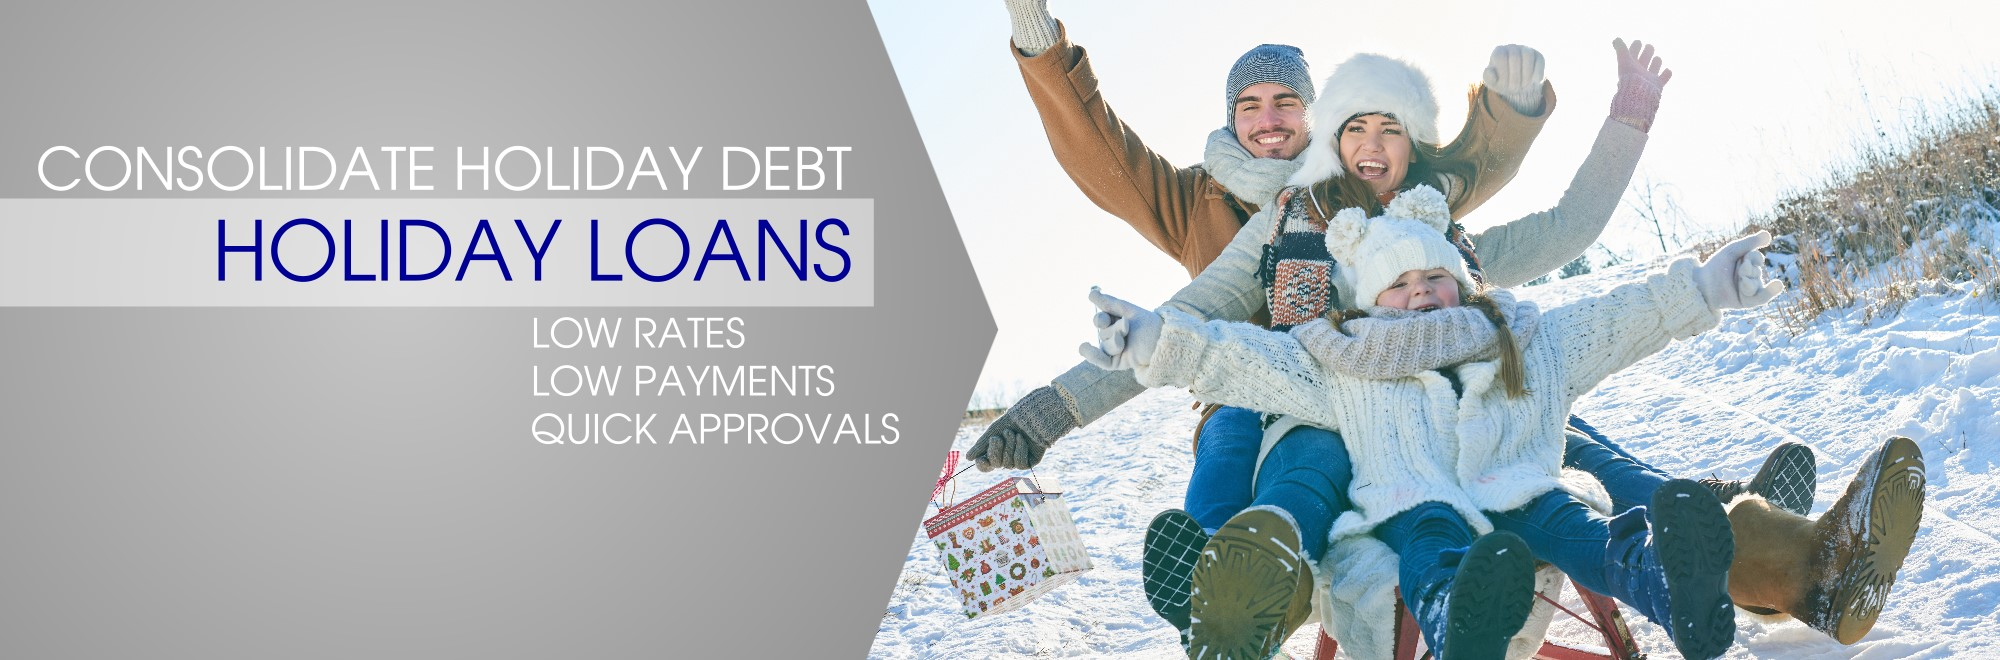 Consolidate Holiday Debit with a Holiday Loan. Low Payments. Low Rates. Quick Applications.